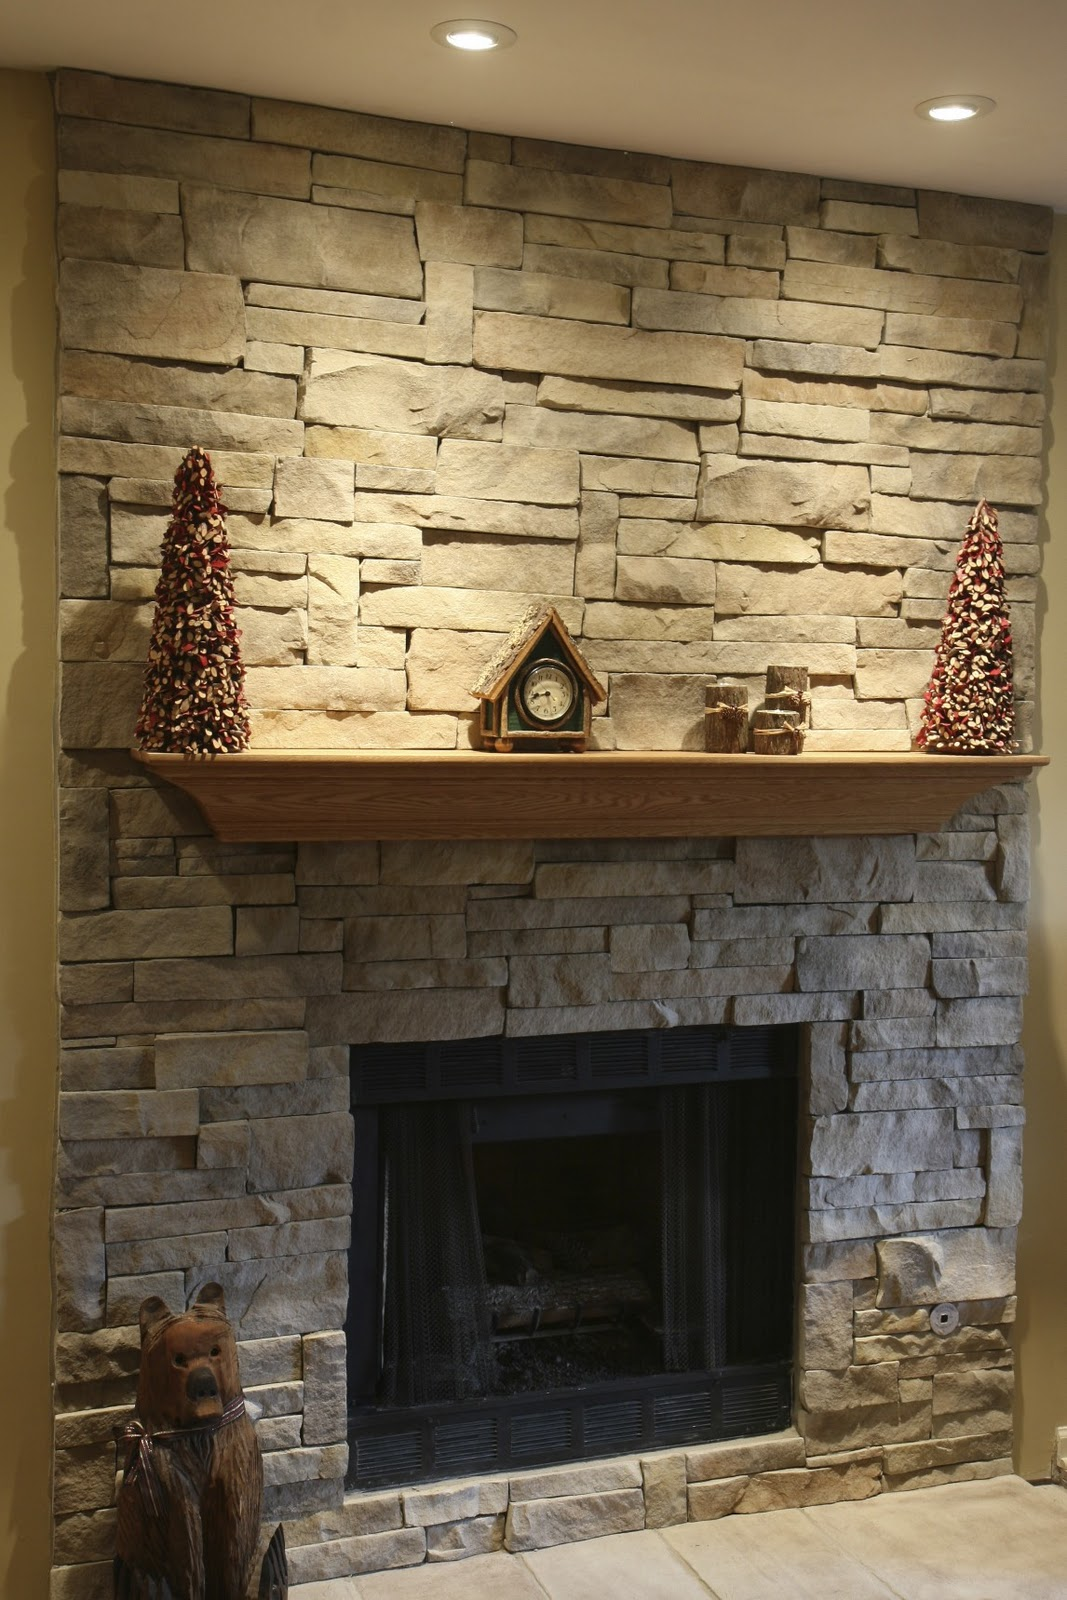 North Star Stone- Stone Fireplaces & Stone Exteriors